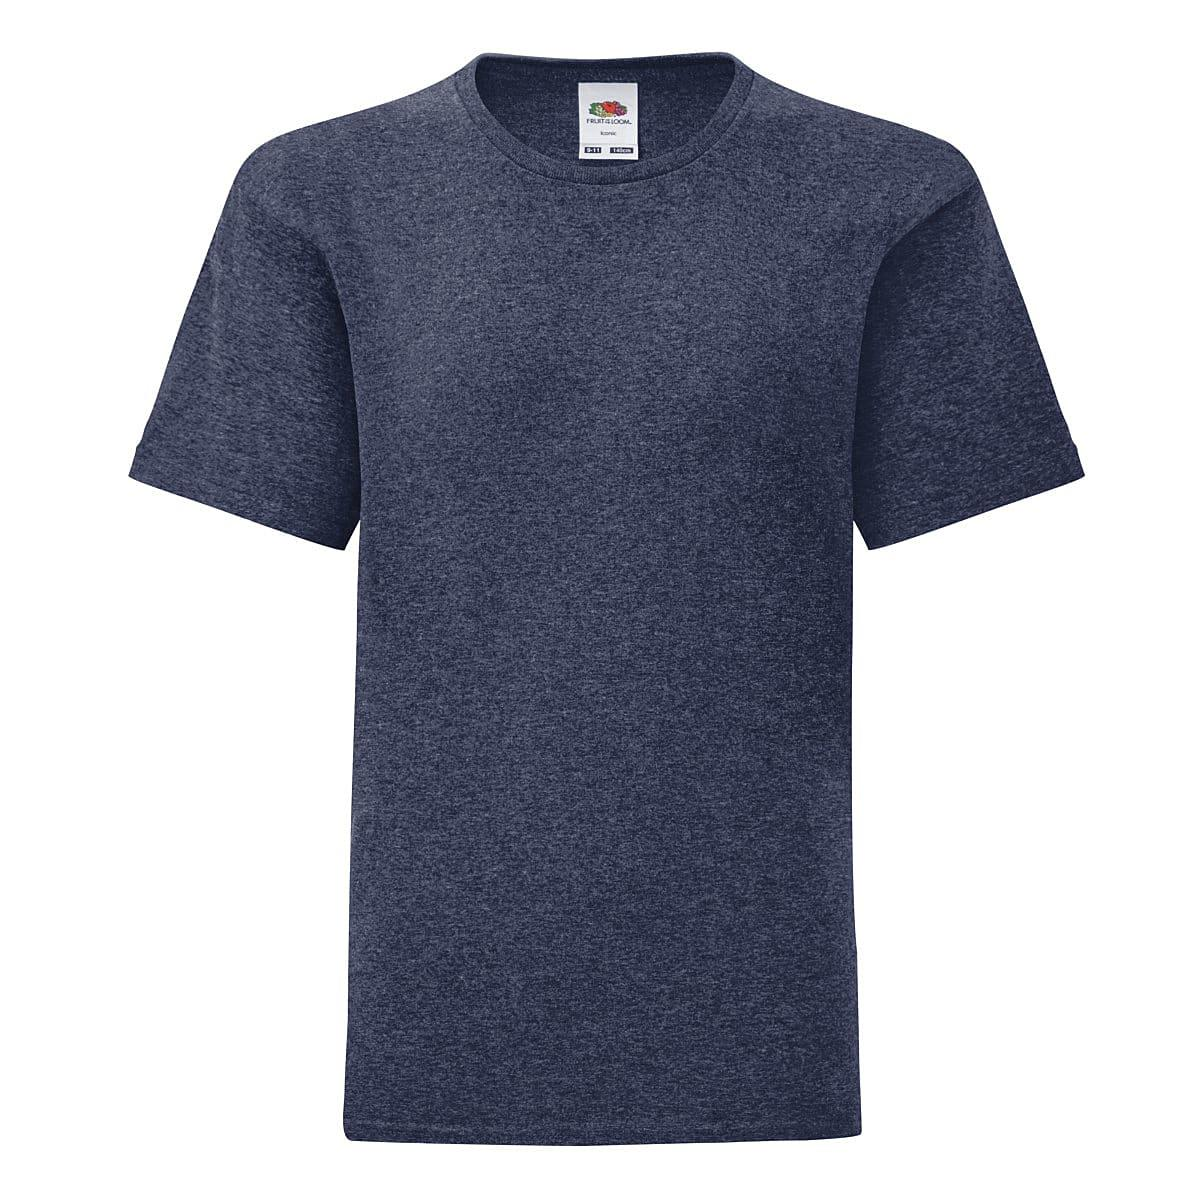 Fruit Of The Loom Kids Iconic T-Shirt in Vintage Heather Navy (Product Code: 61023)